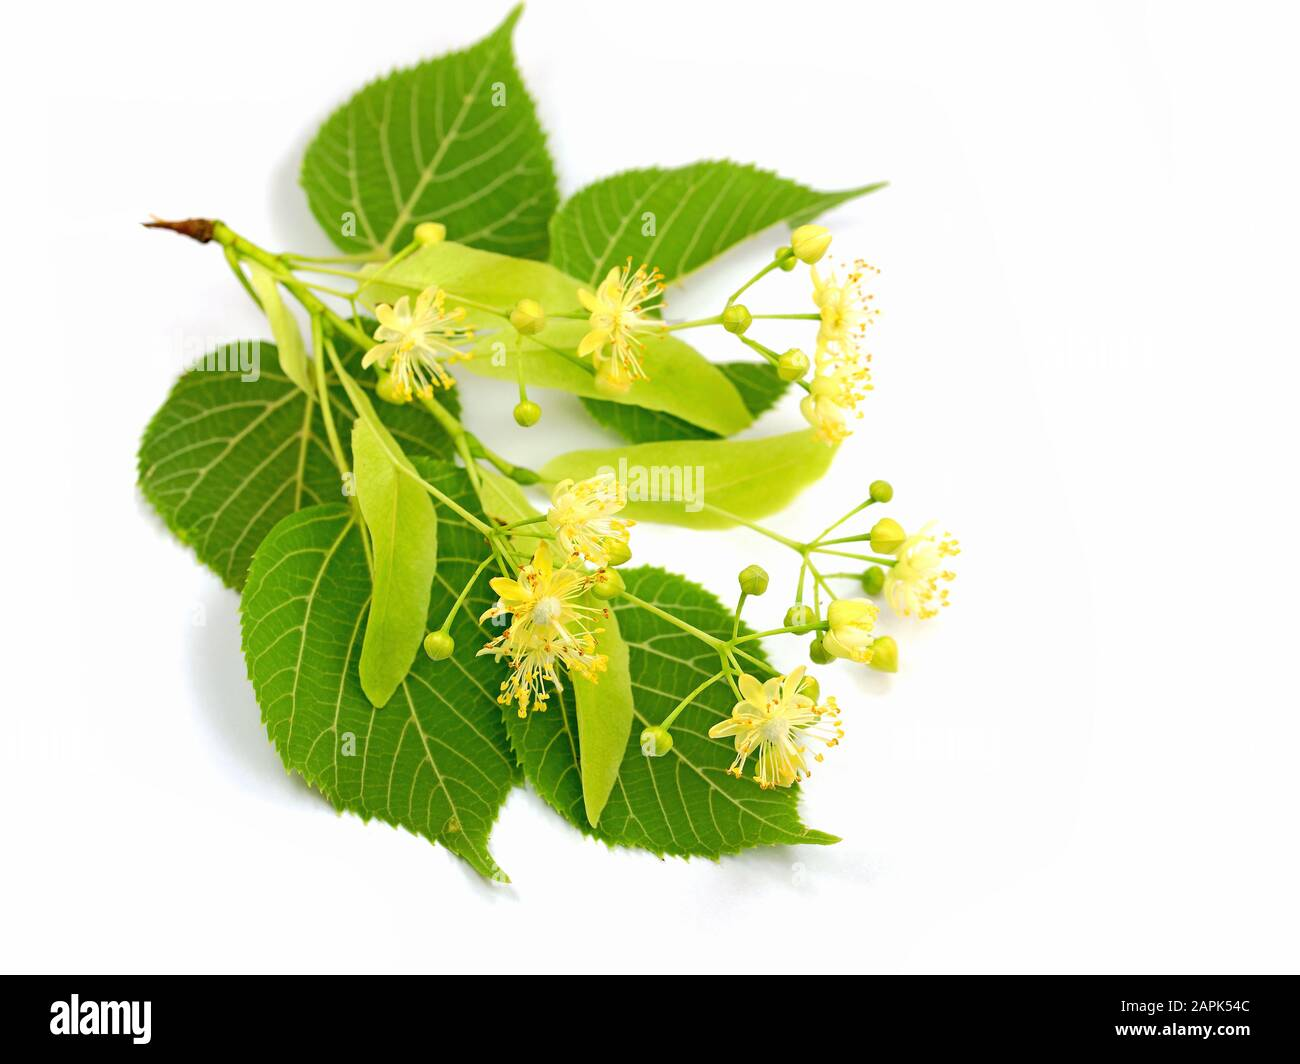 Linden flowers isolated against a white background Stock Photo